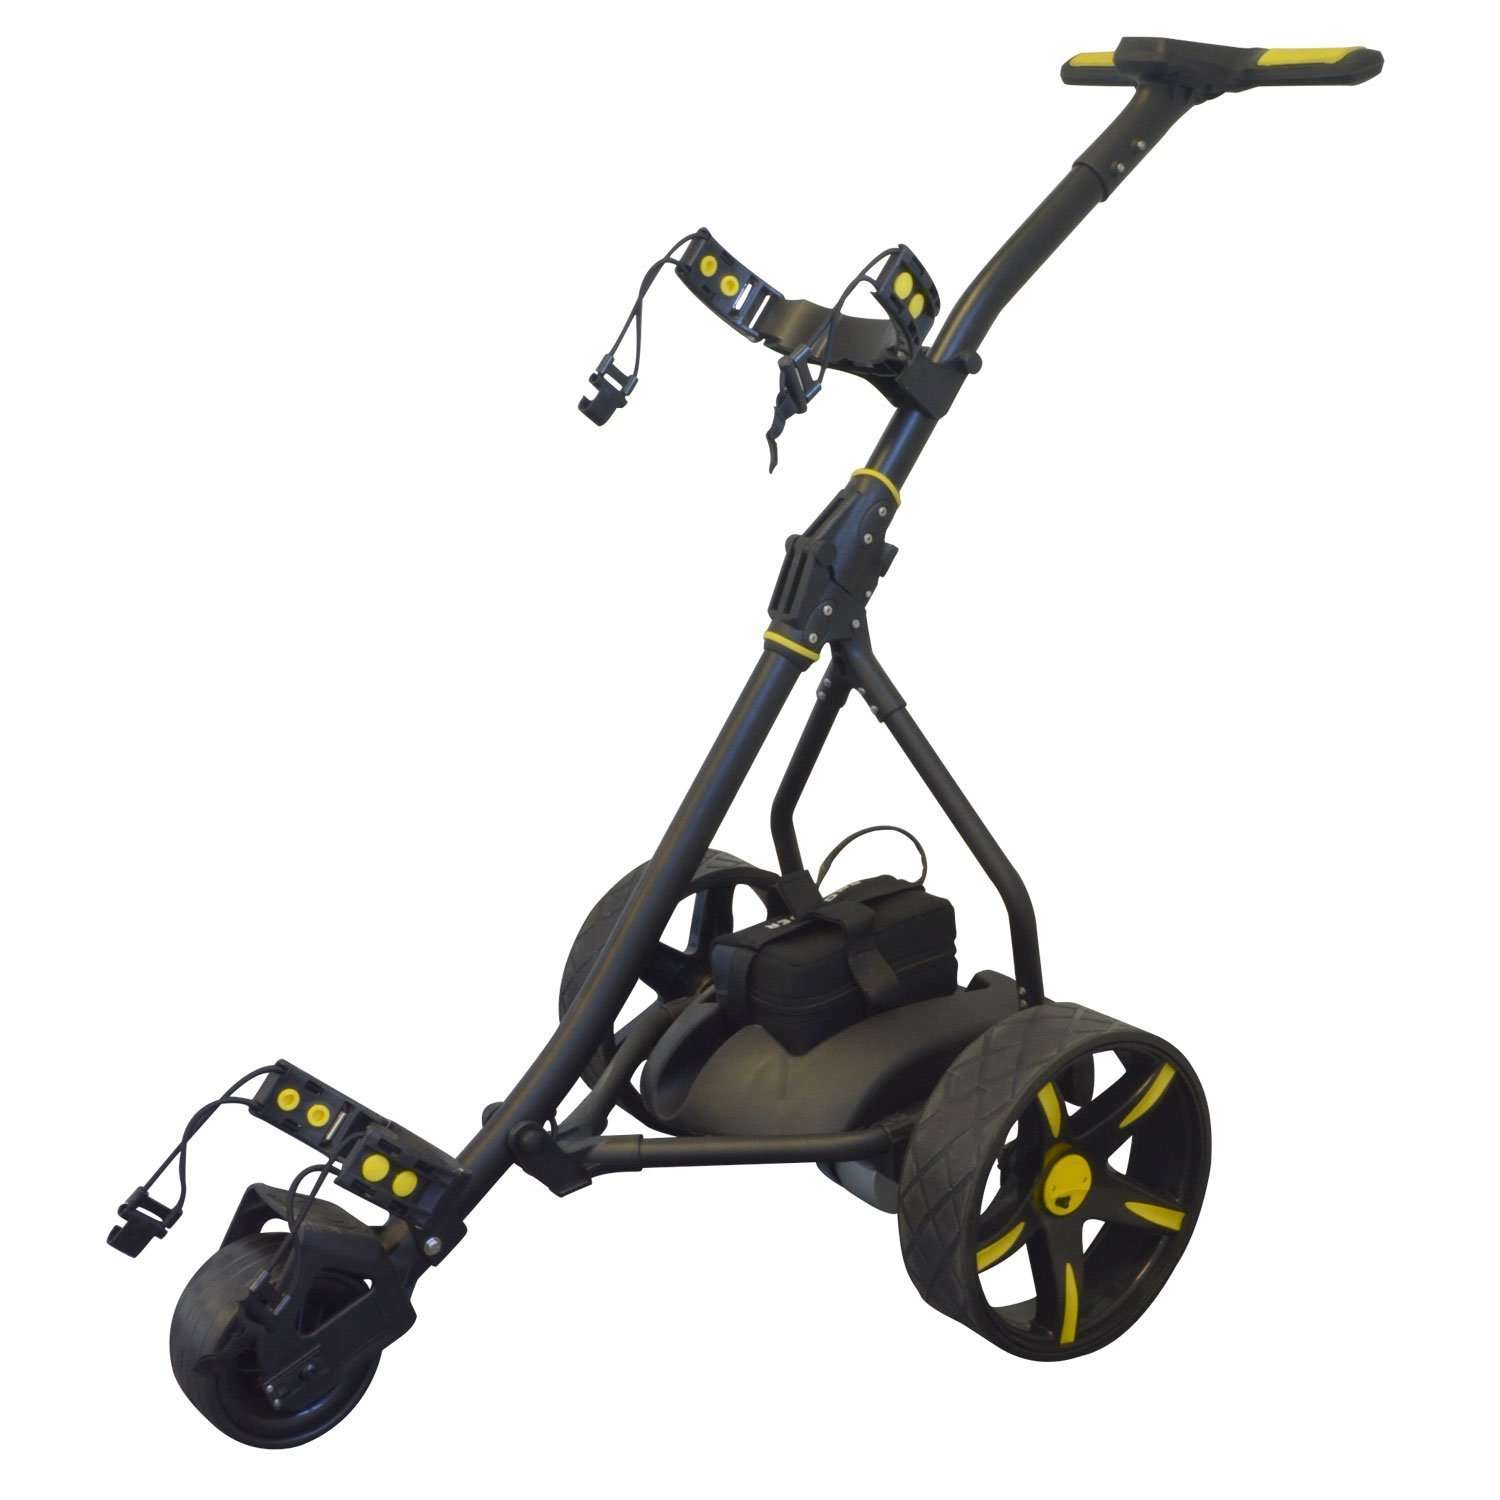 Shop our massive range of Push Golf Trolleys at very competitive prices. Discover the latest and greatest Manual Trolleys for the golf course. All major golf brands.